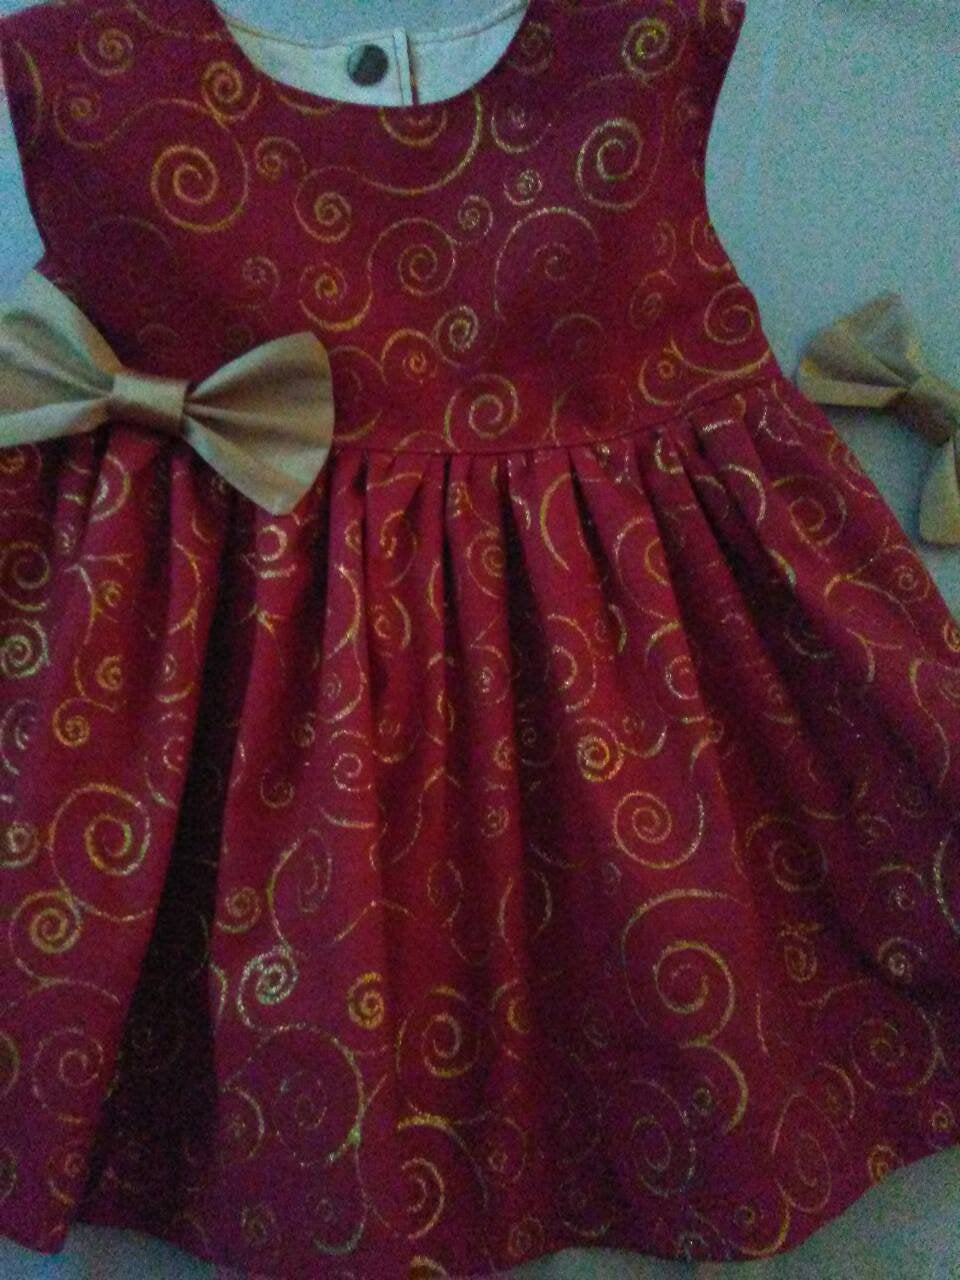 Christmas Dress Baby Toddler Girl Holiday Party Red Gold 6Mo To 4 Yr.old Sleeveless Or Flutter Babycutebaby.etsy.com